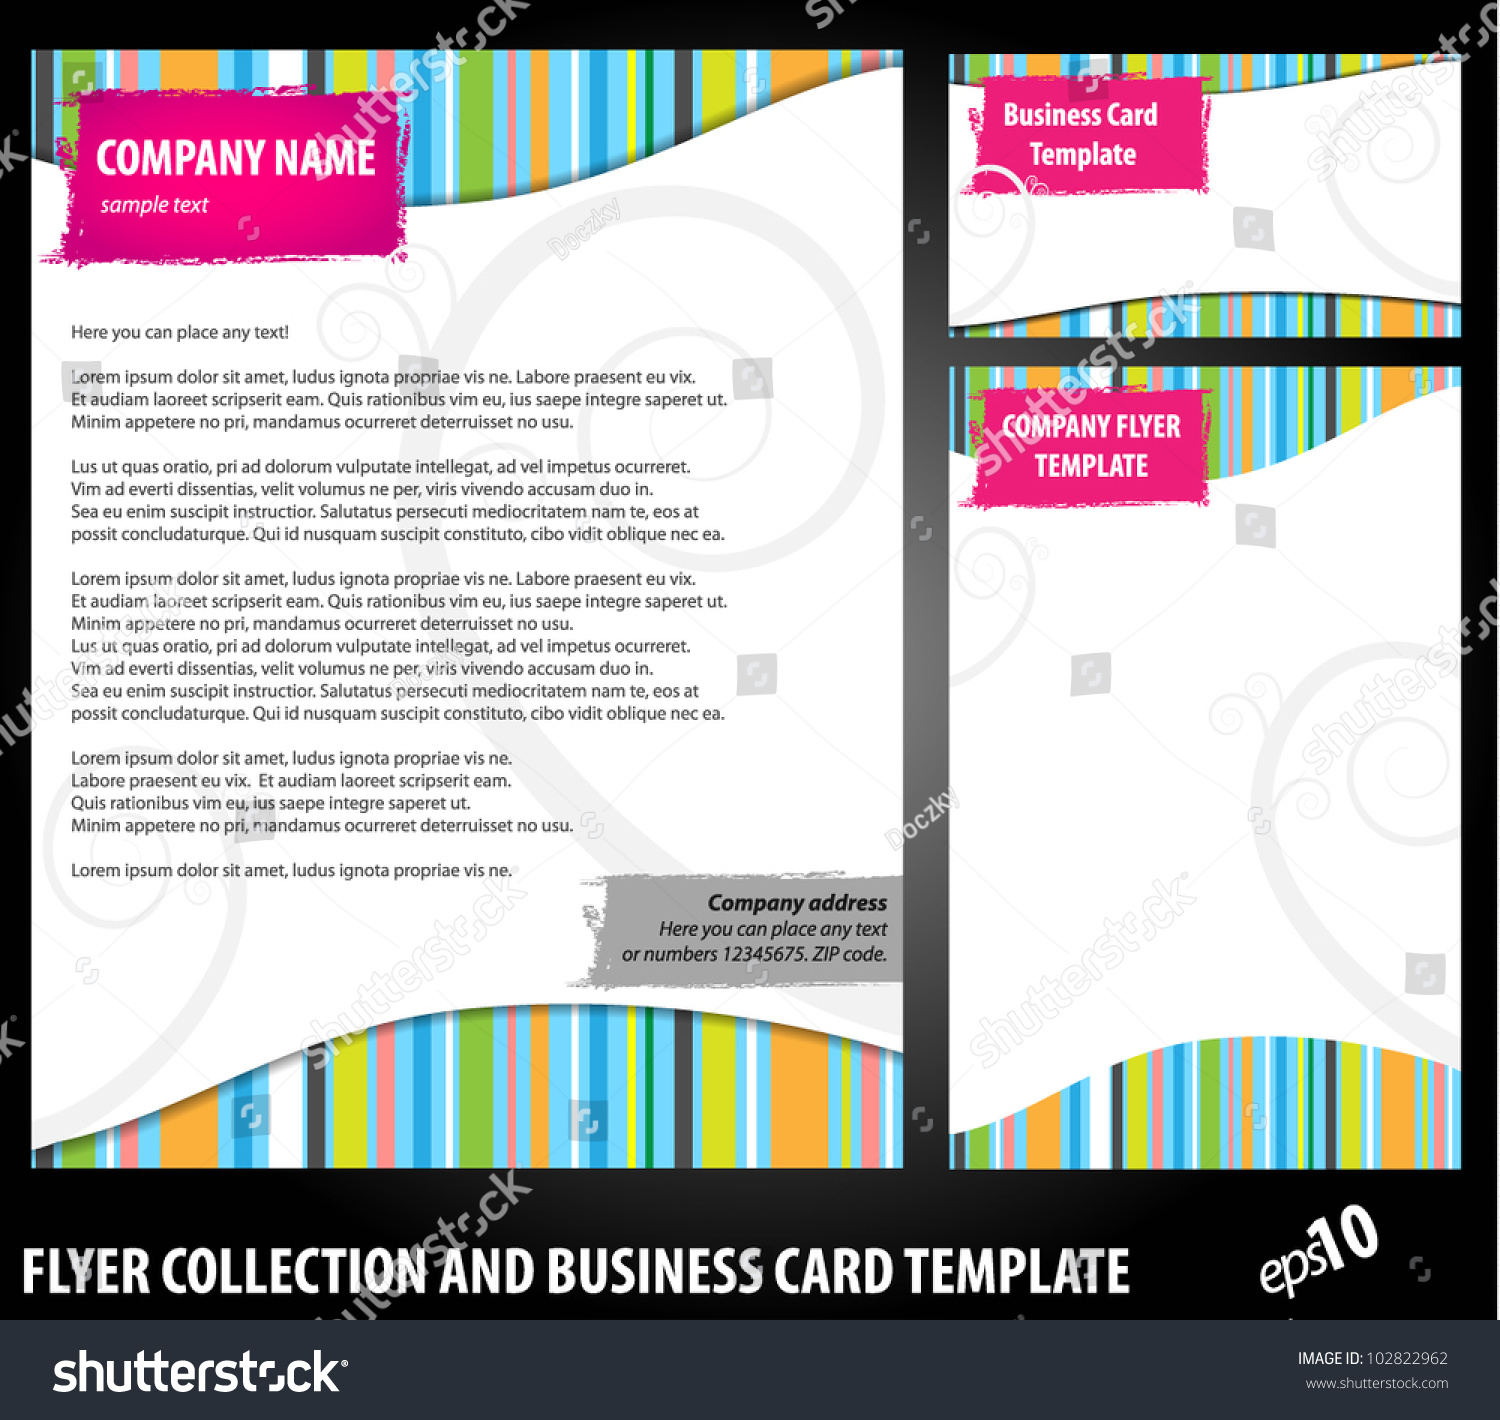 business card template illustrator 10 up image collections